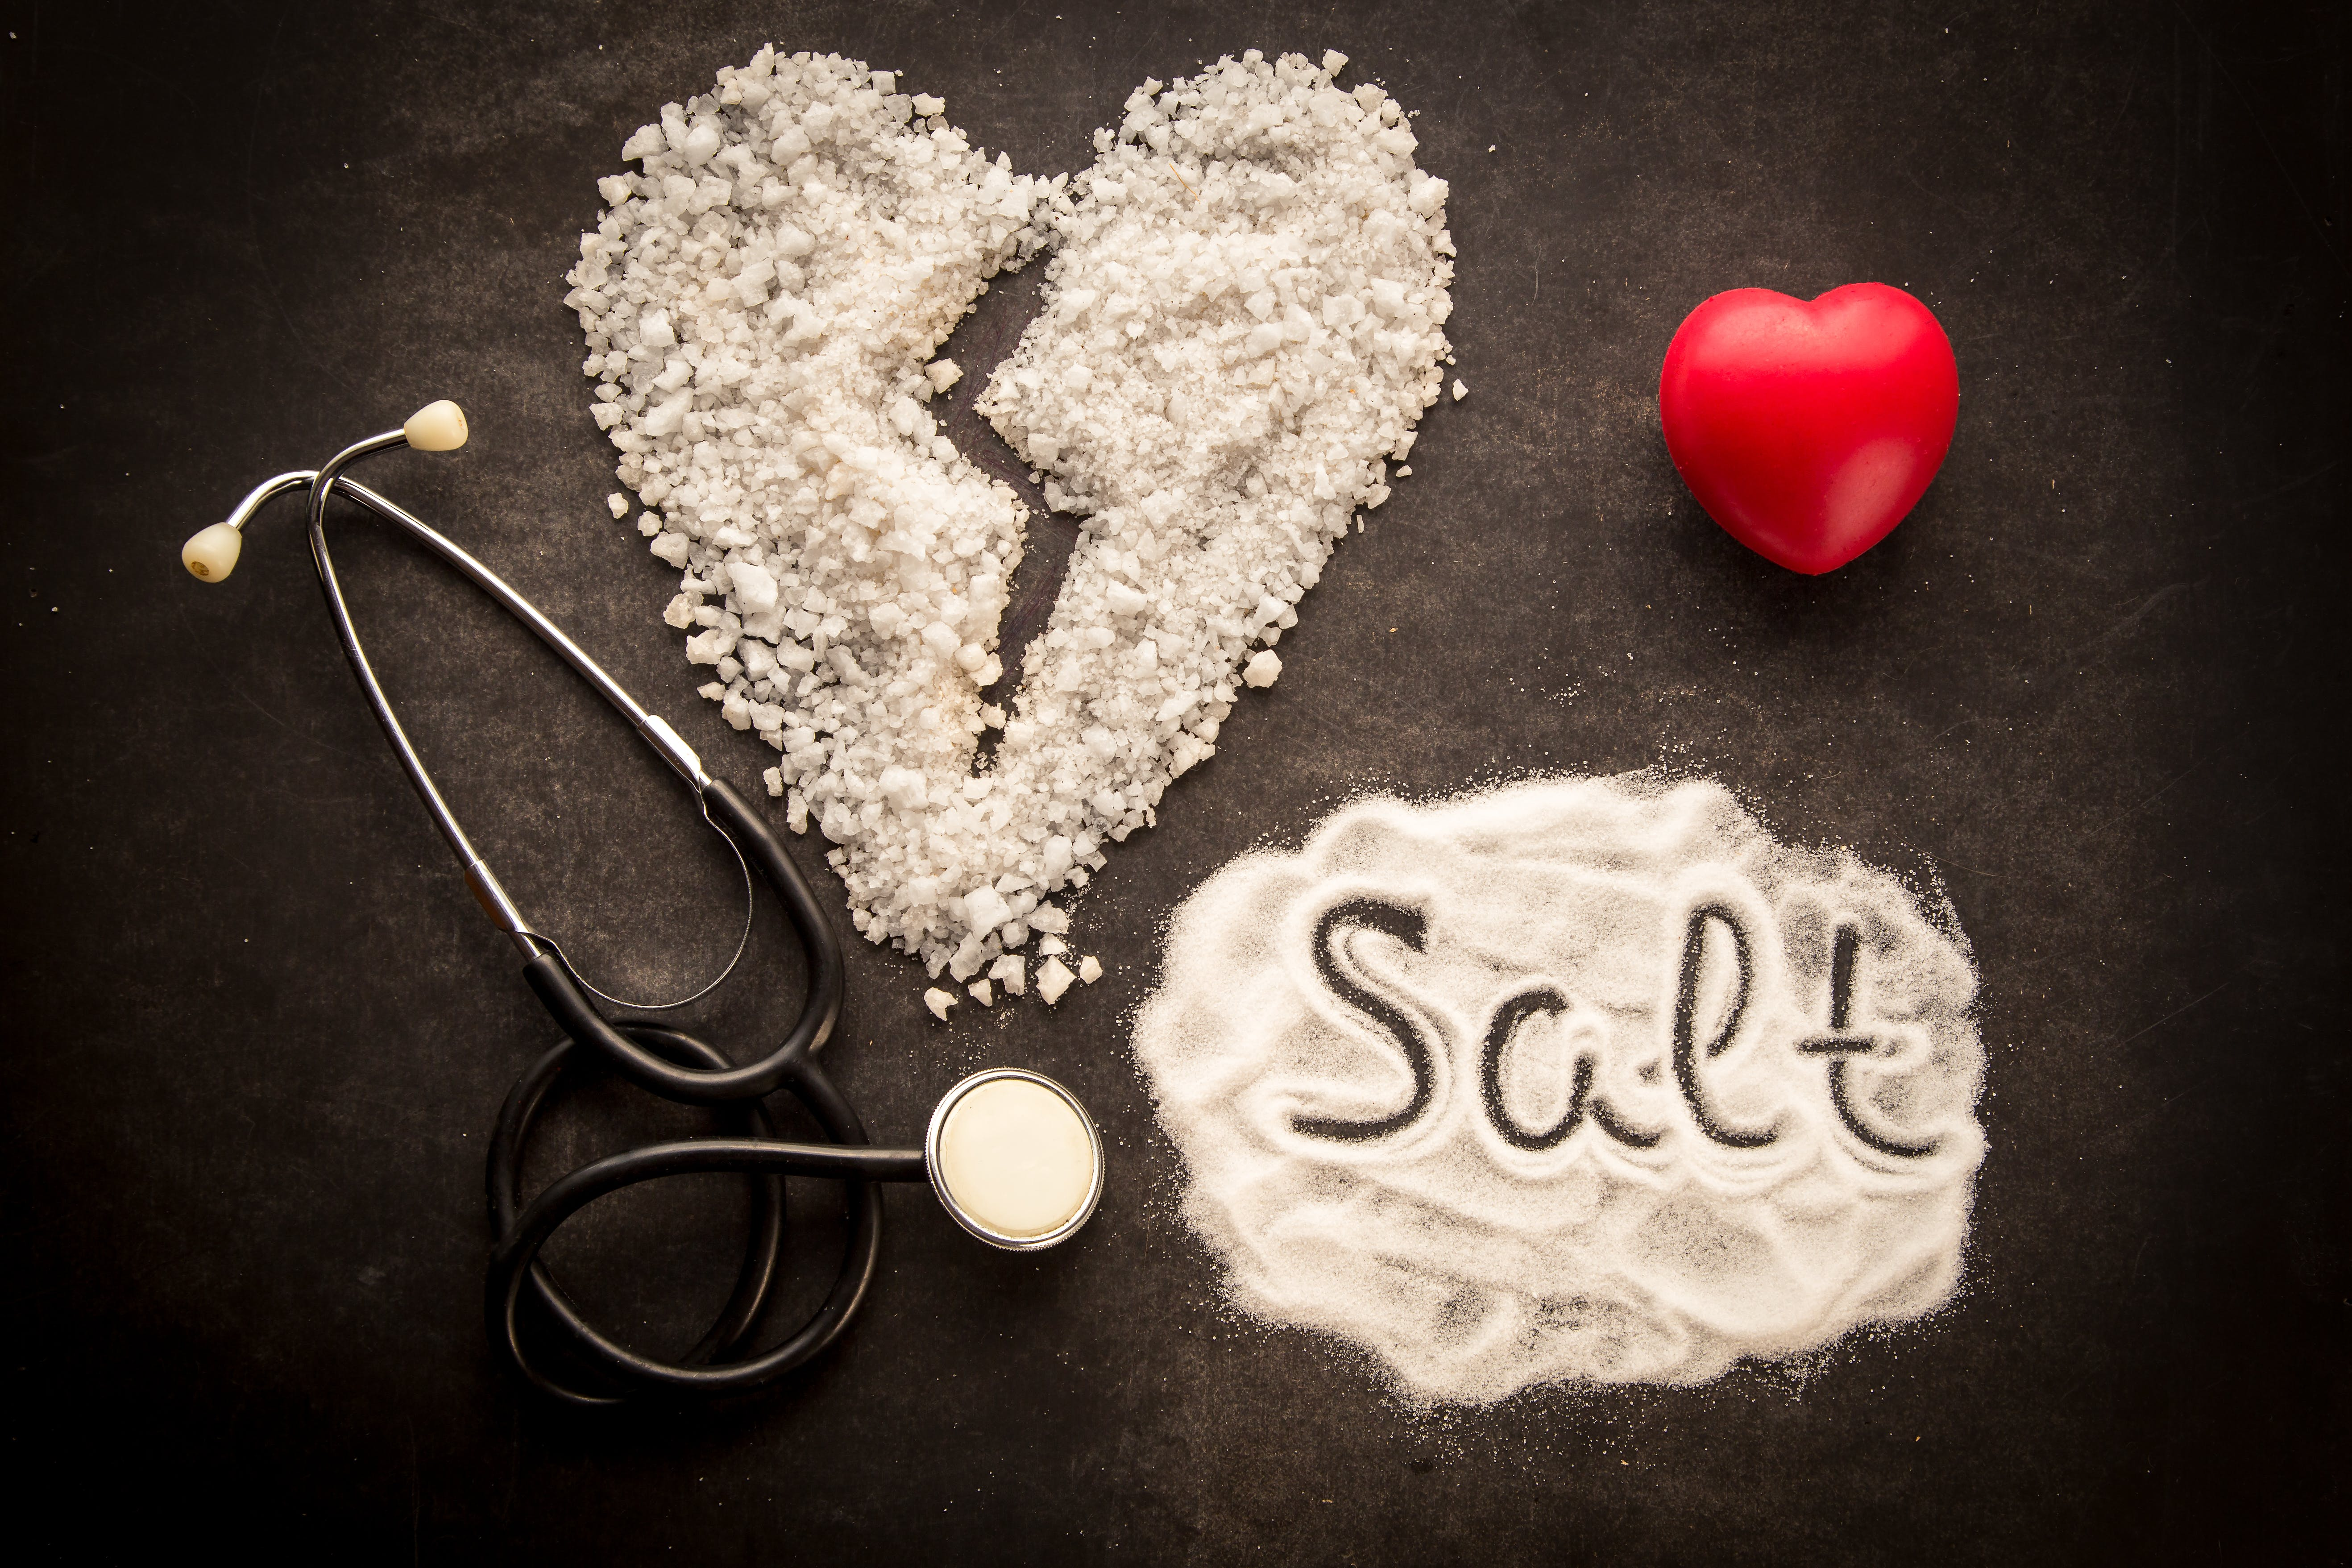 Sprinkled salt on dark background with broken heart shape made from salt.